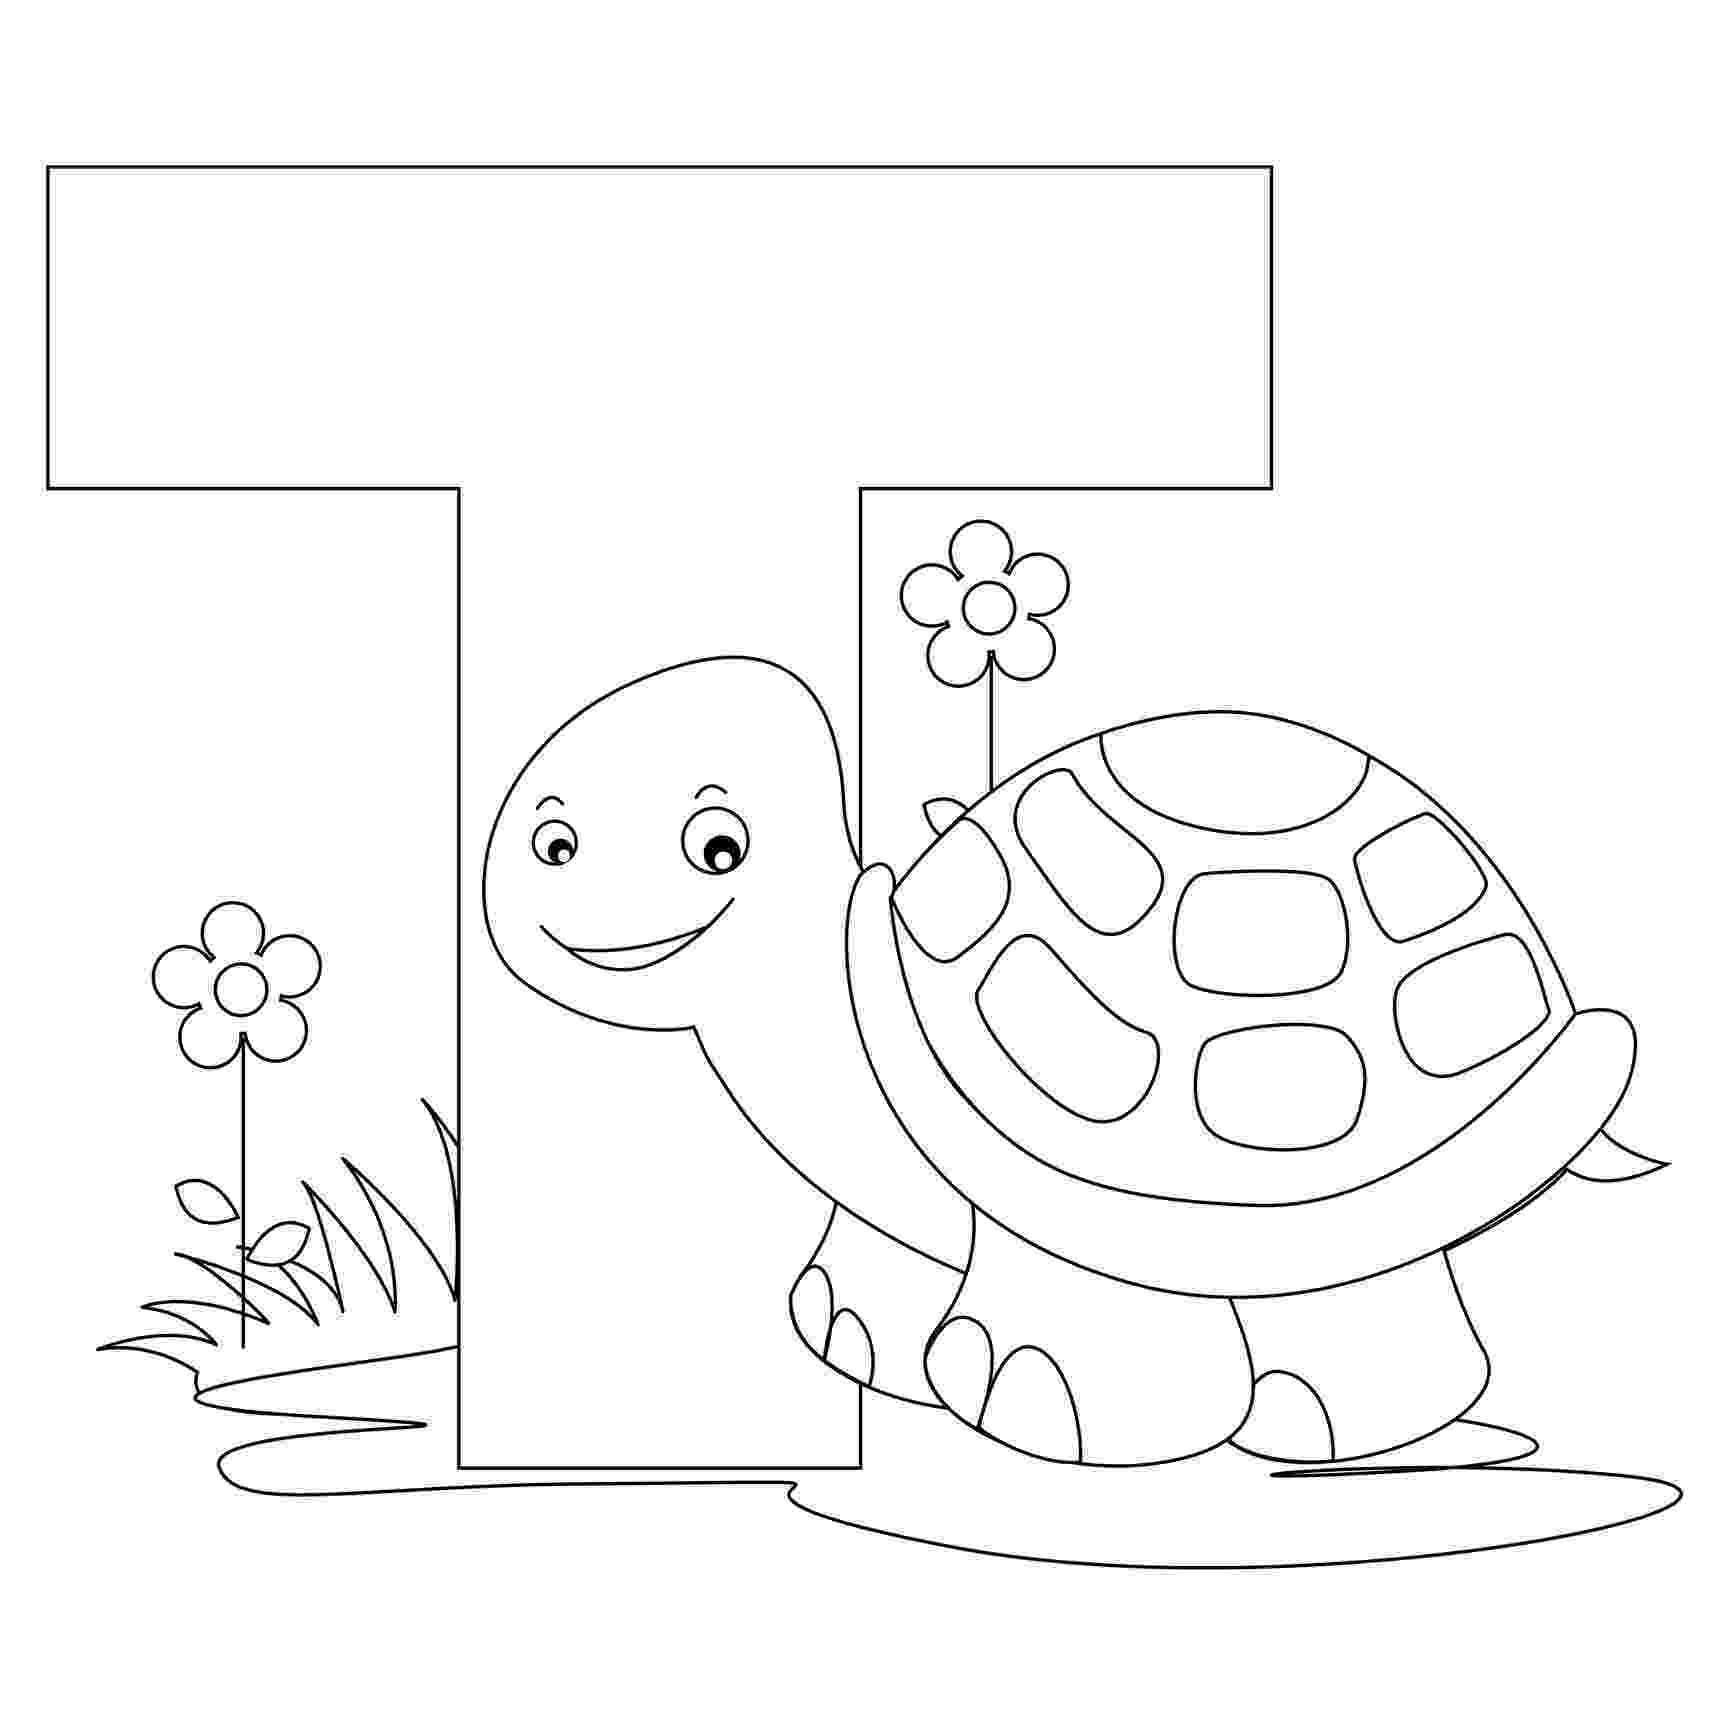 childrens colouring pages alphabet free printable alphabet coloring pages for kids best alphabet pages colouring childrens